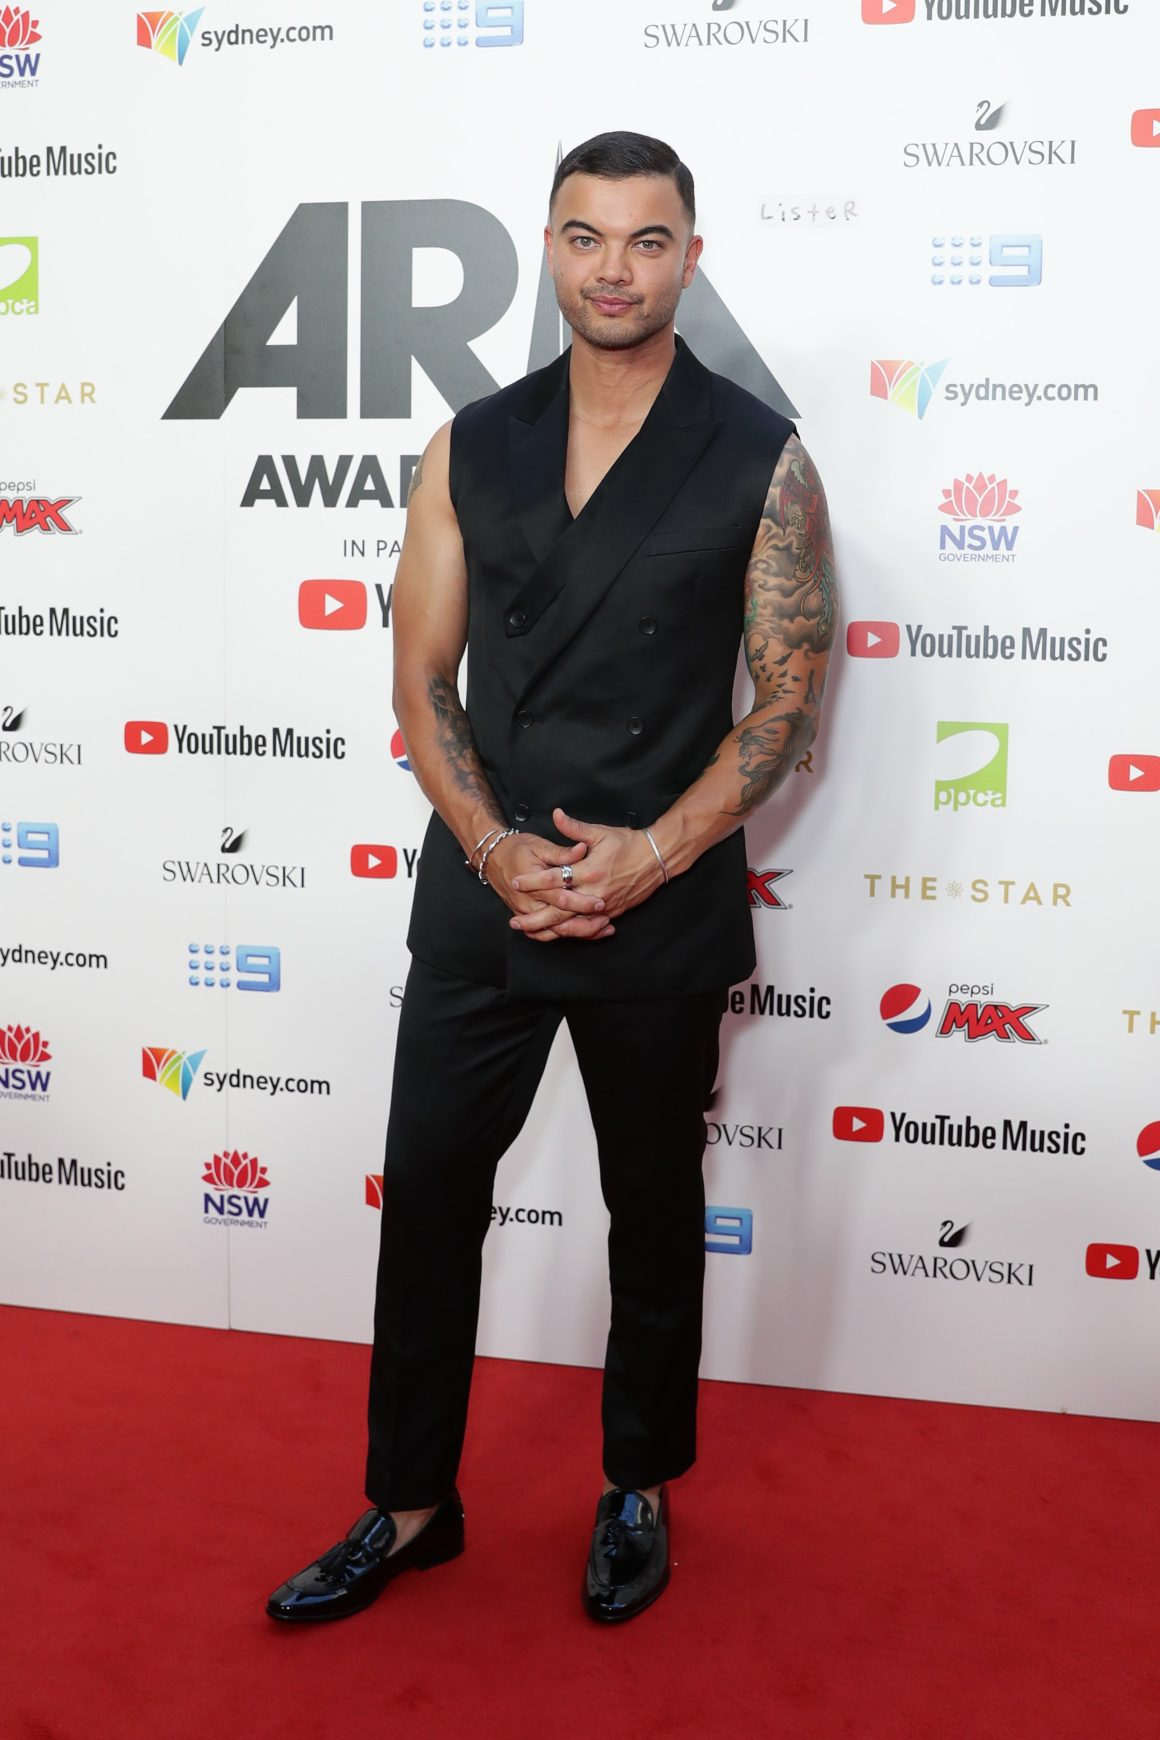 33rd Annual ARIA Awards 2019 - Arrivals